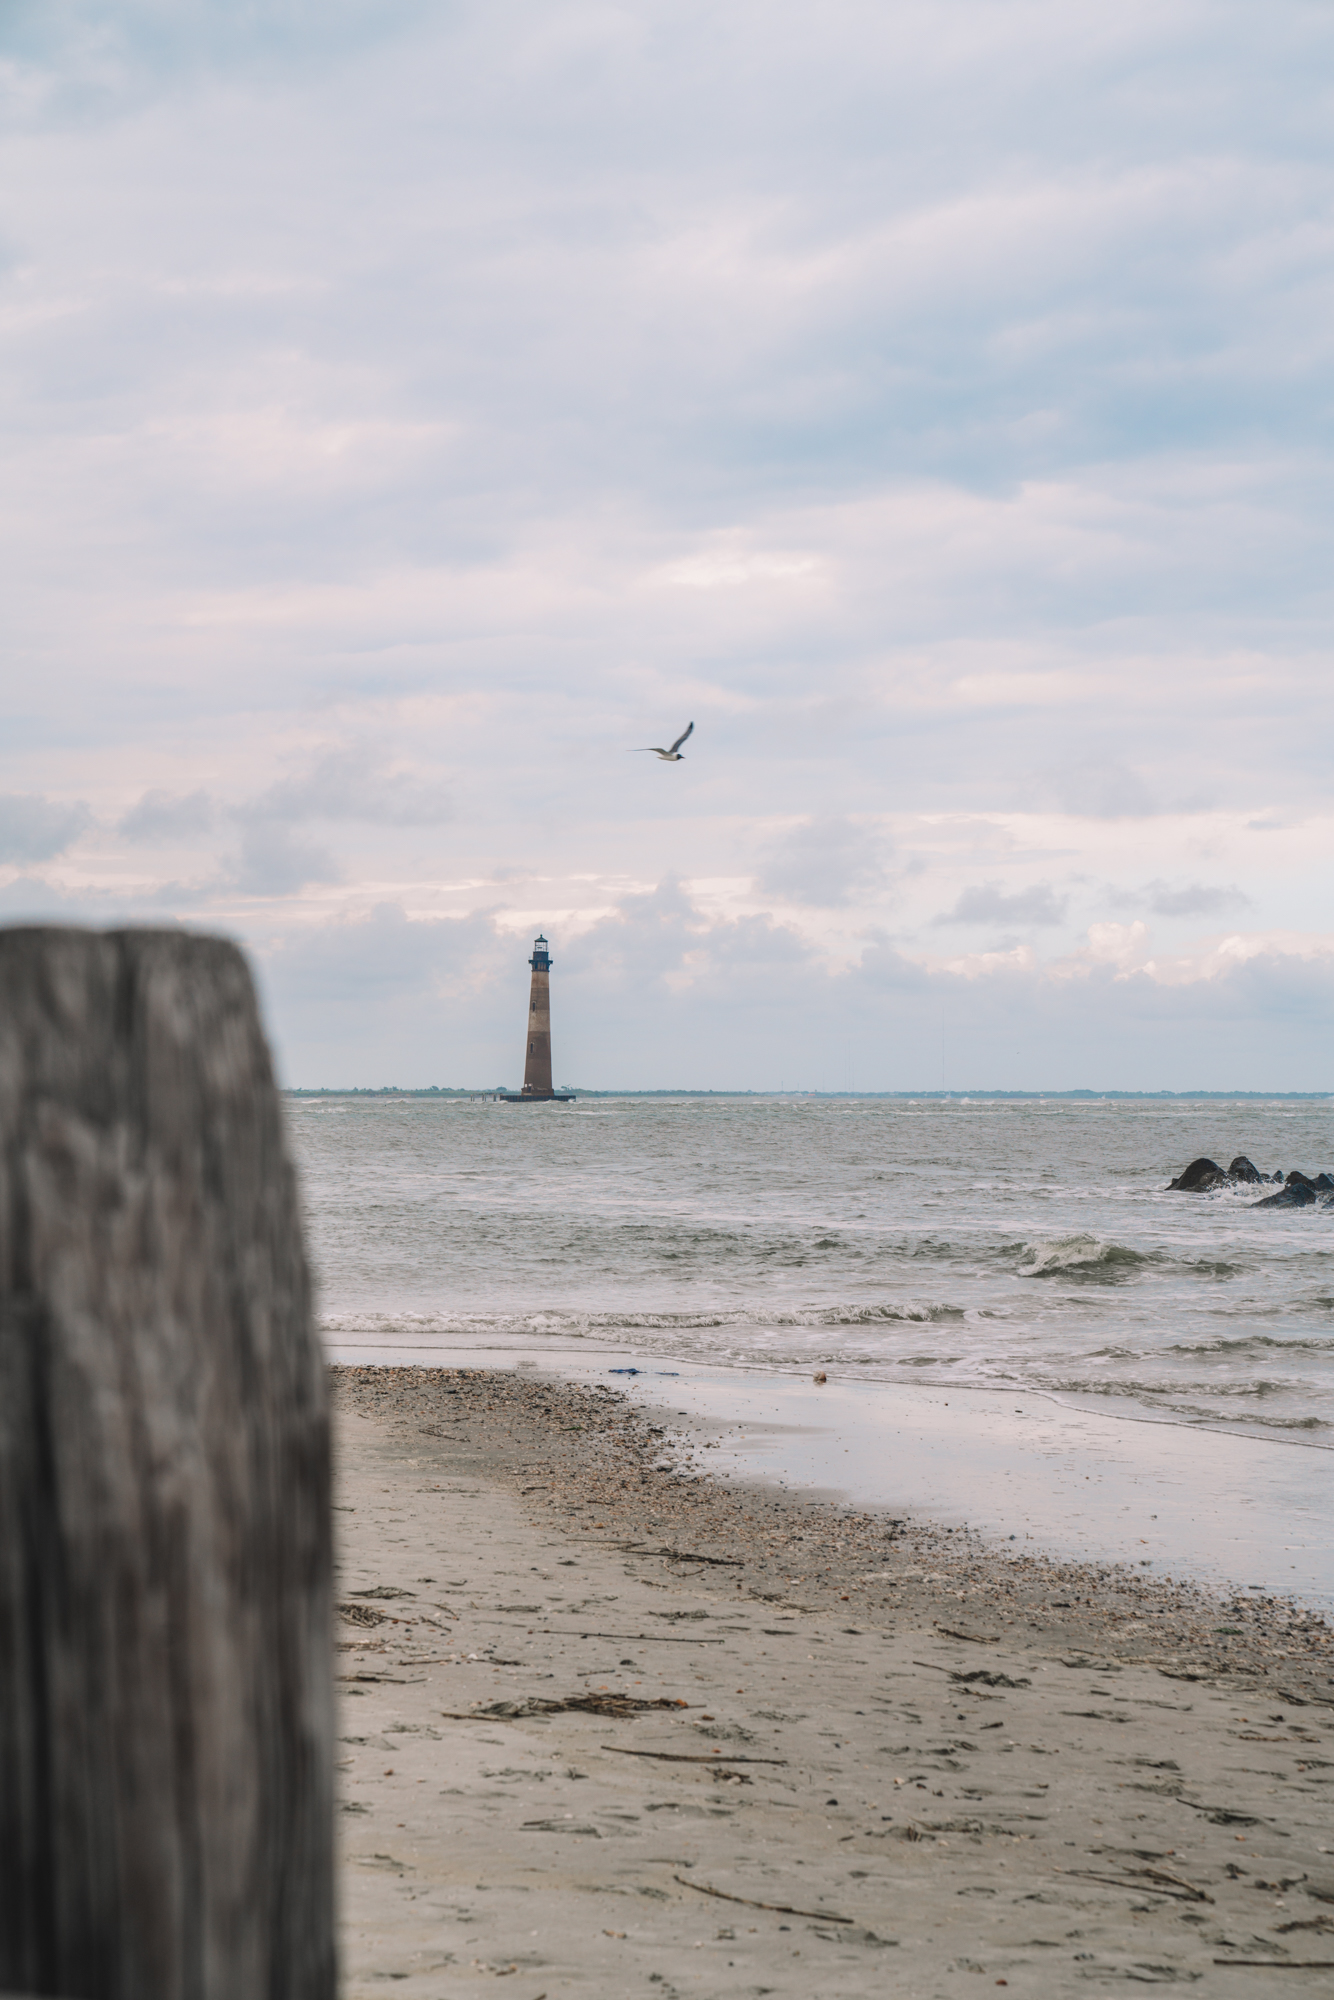 A red and white lighthouse stands far away with the beach in the foreground.